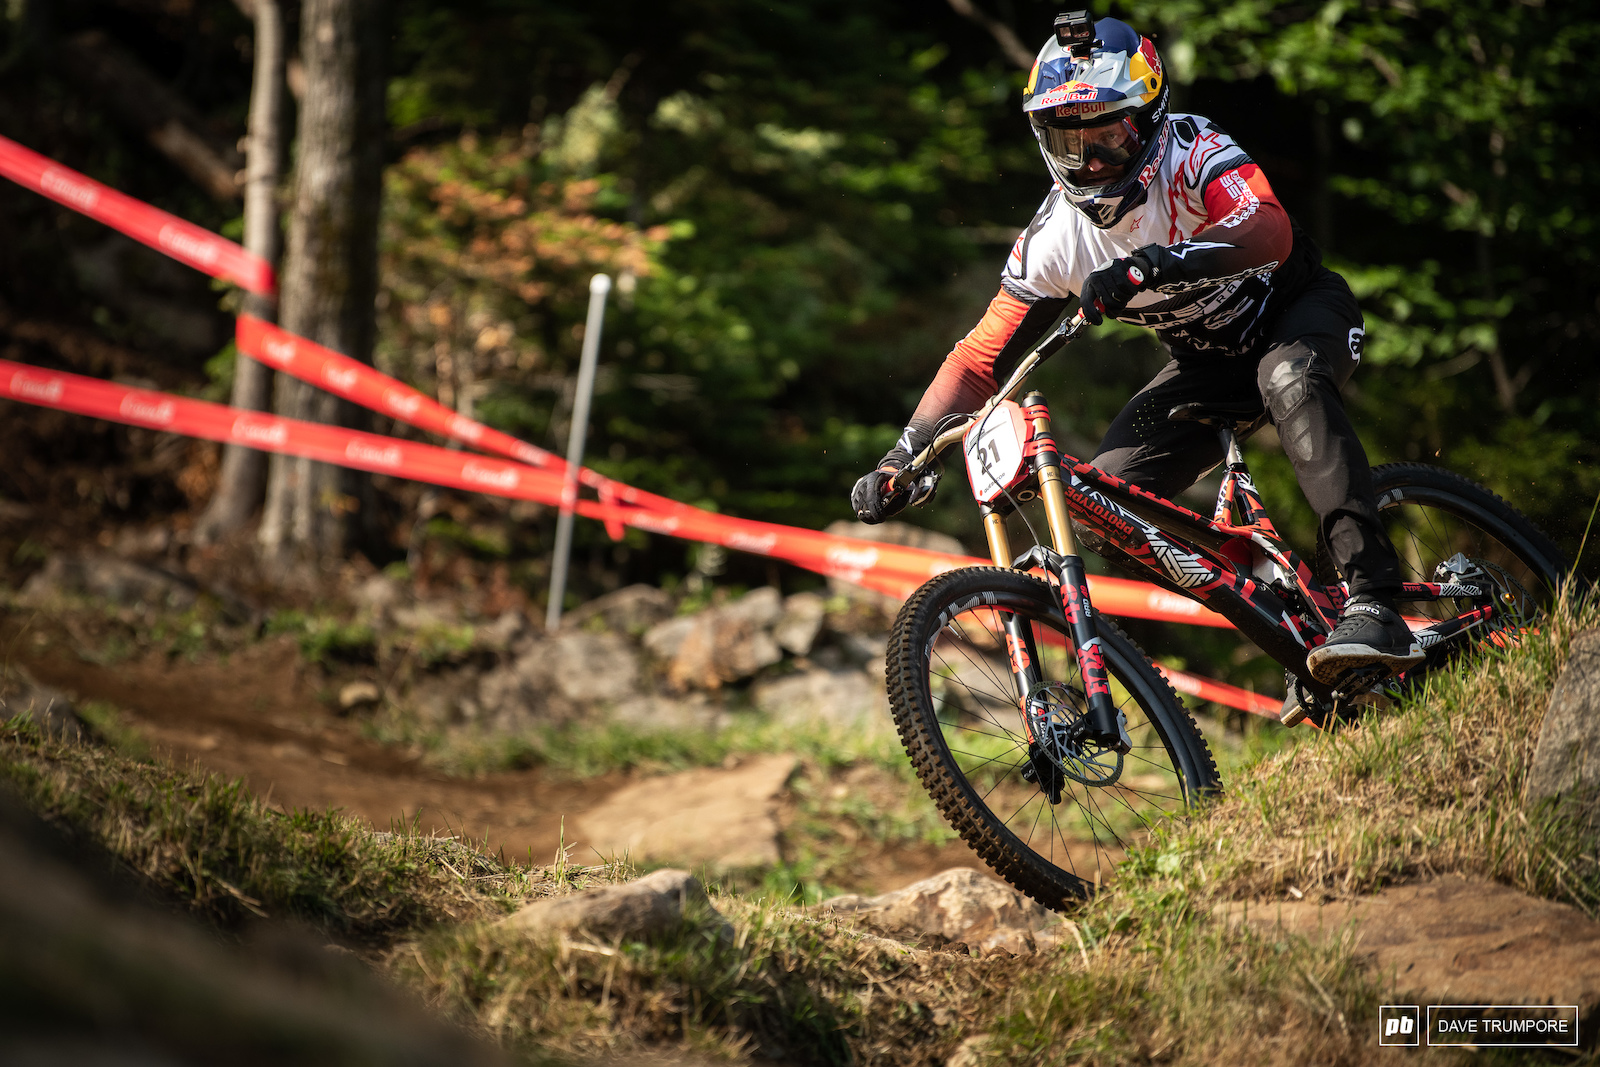 Aaron Gwin is back between the tape and on a track that has treated him well over the years